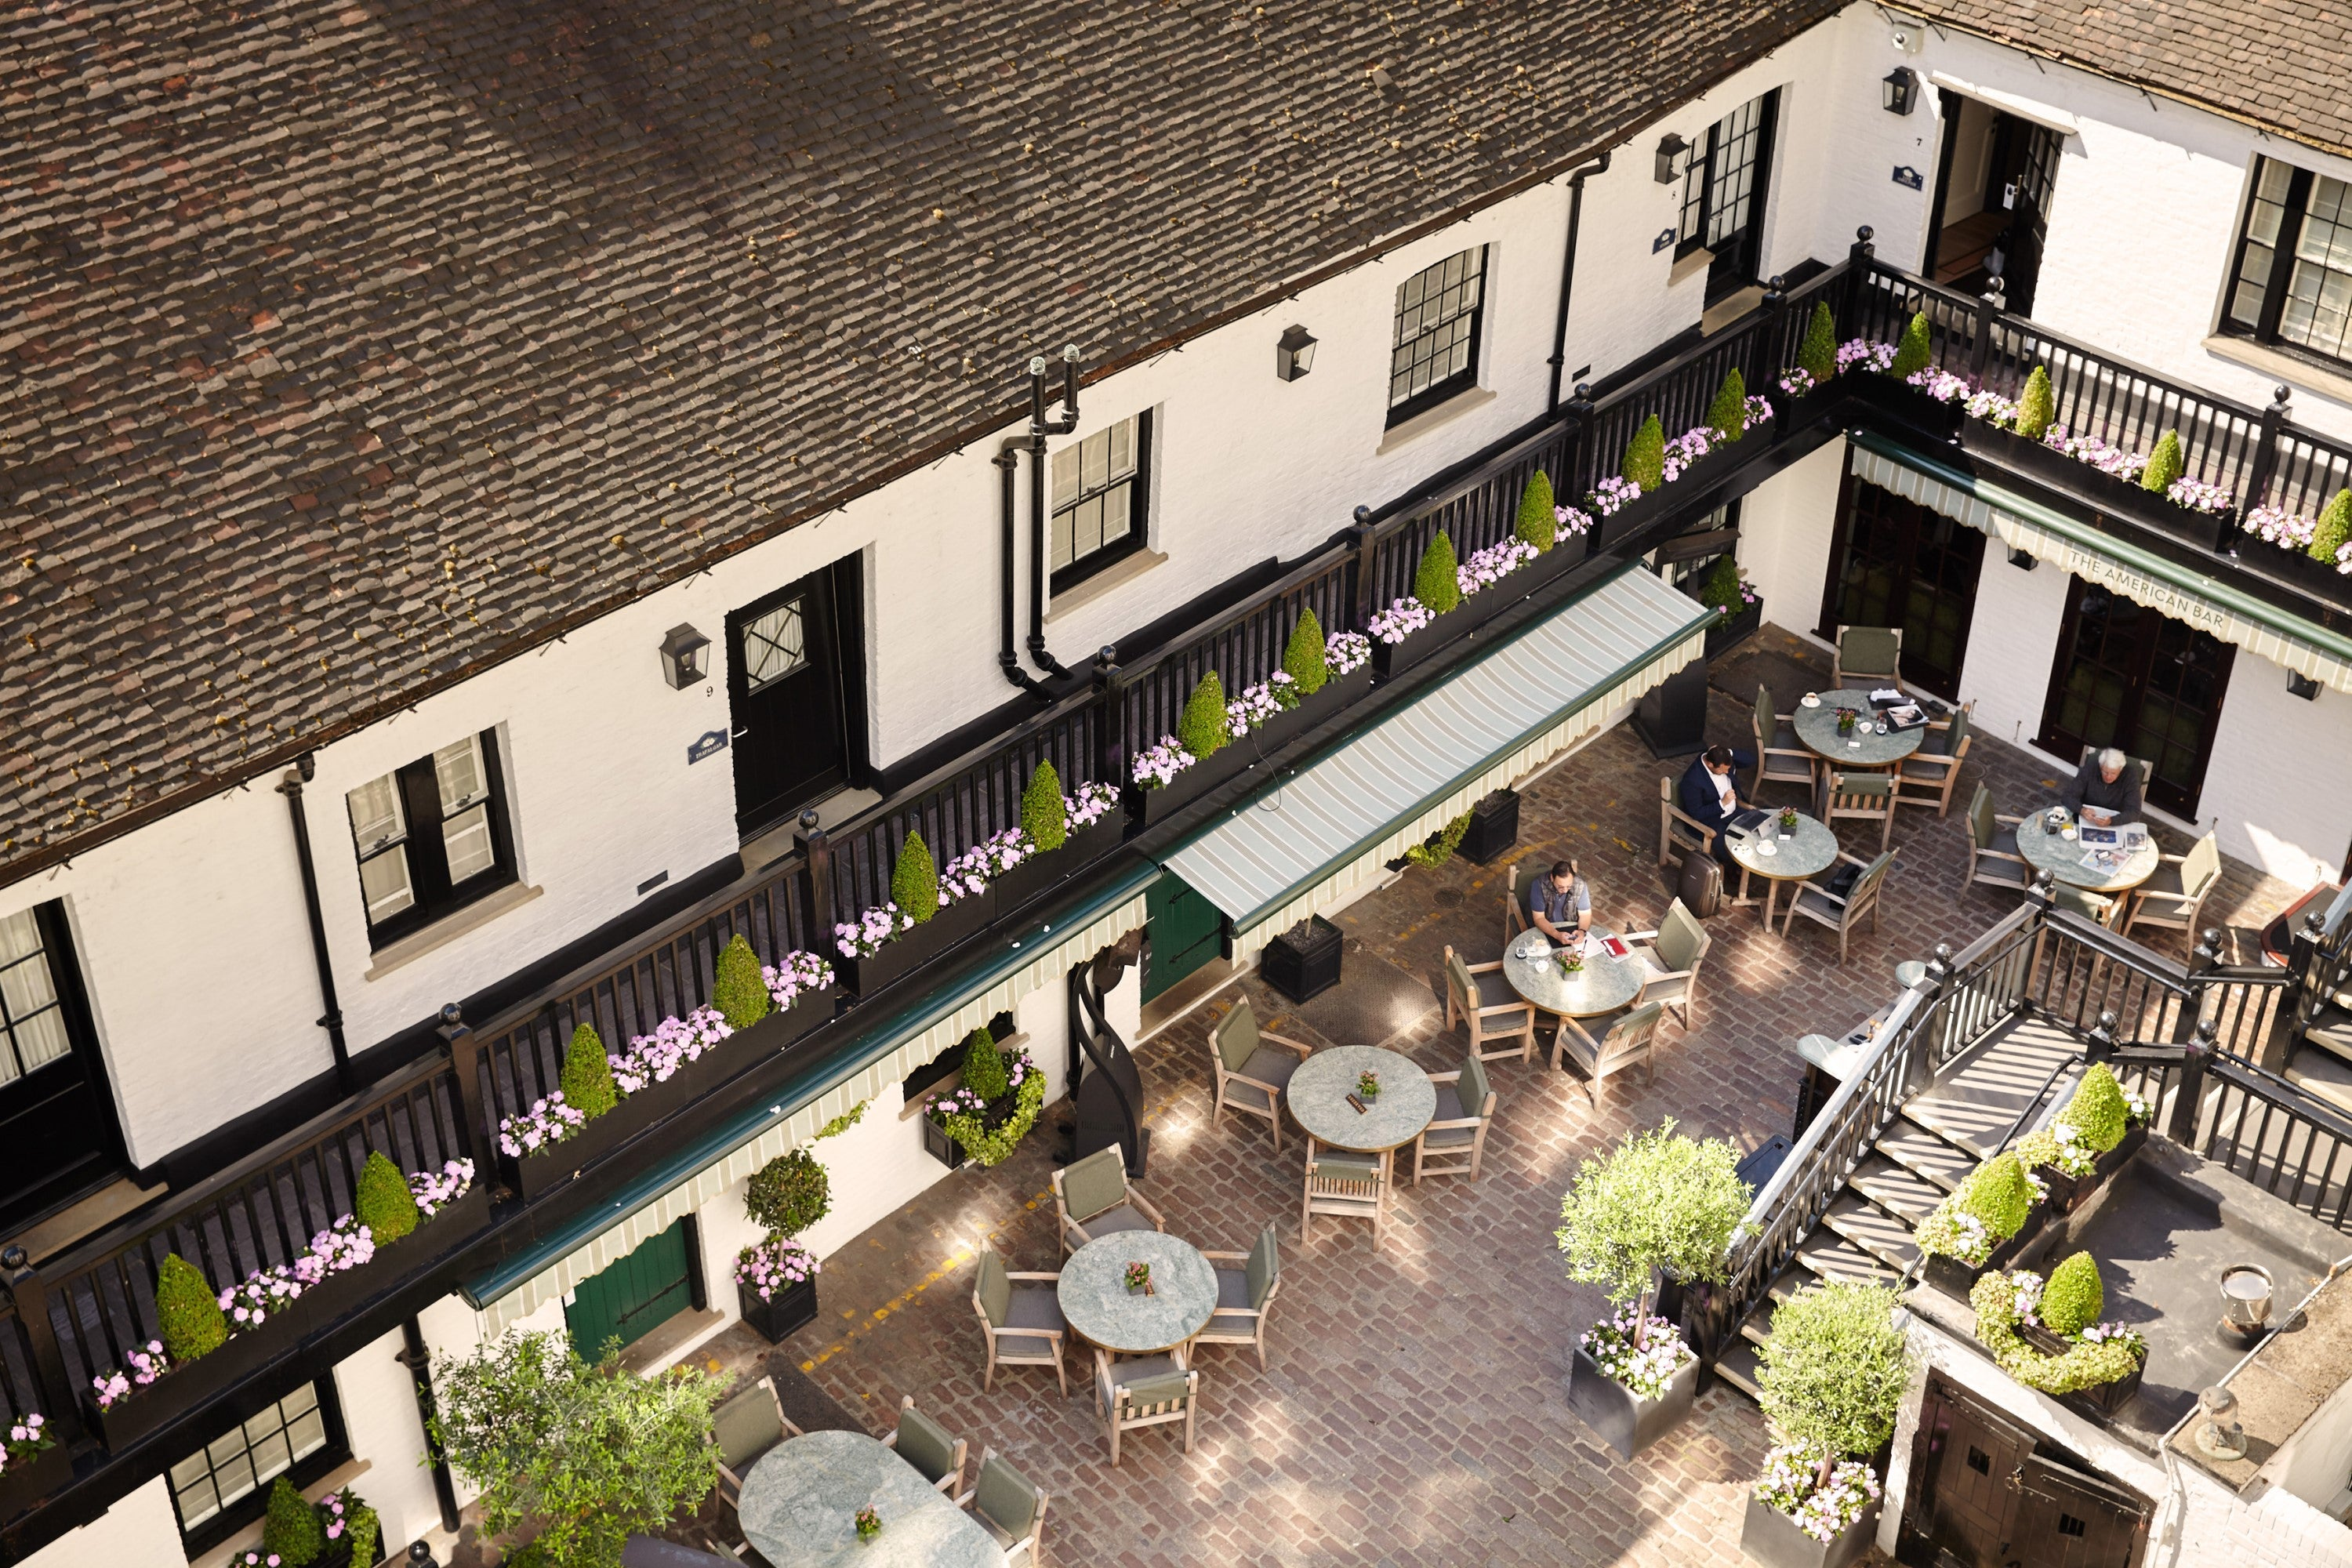 The Courtyard at The Stafford Hotel's American Bar as seen from above.